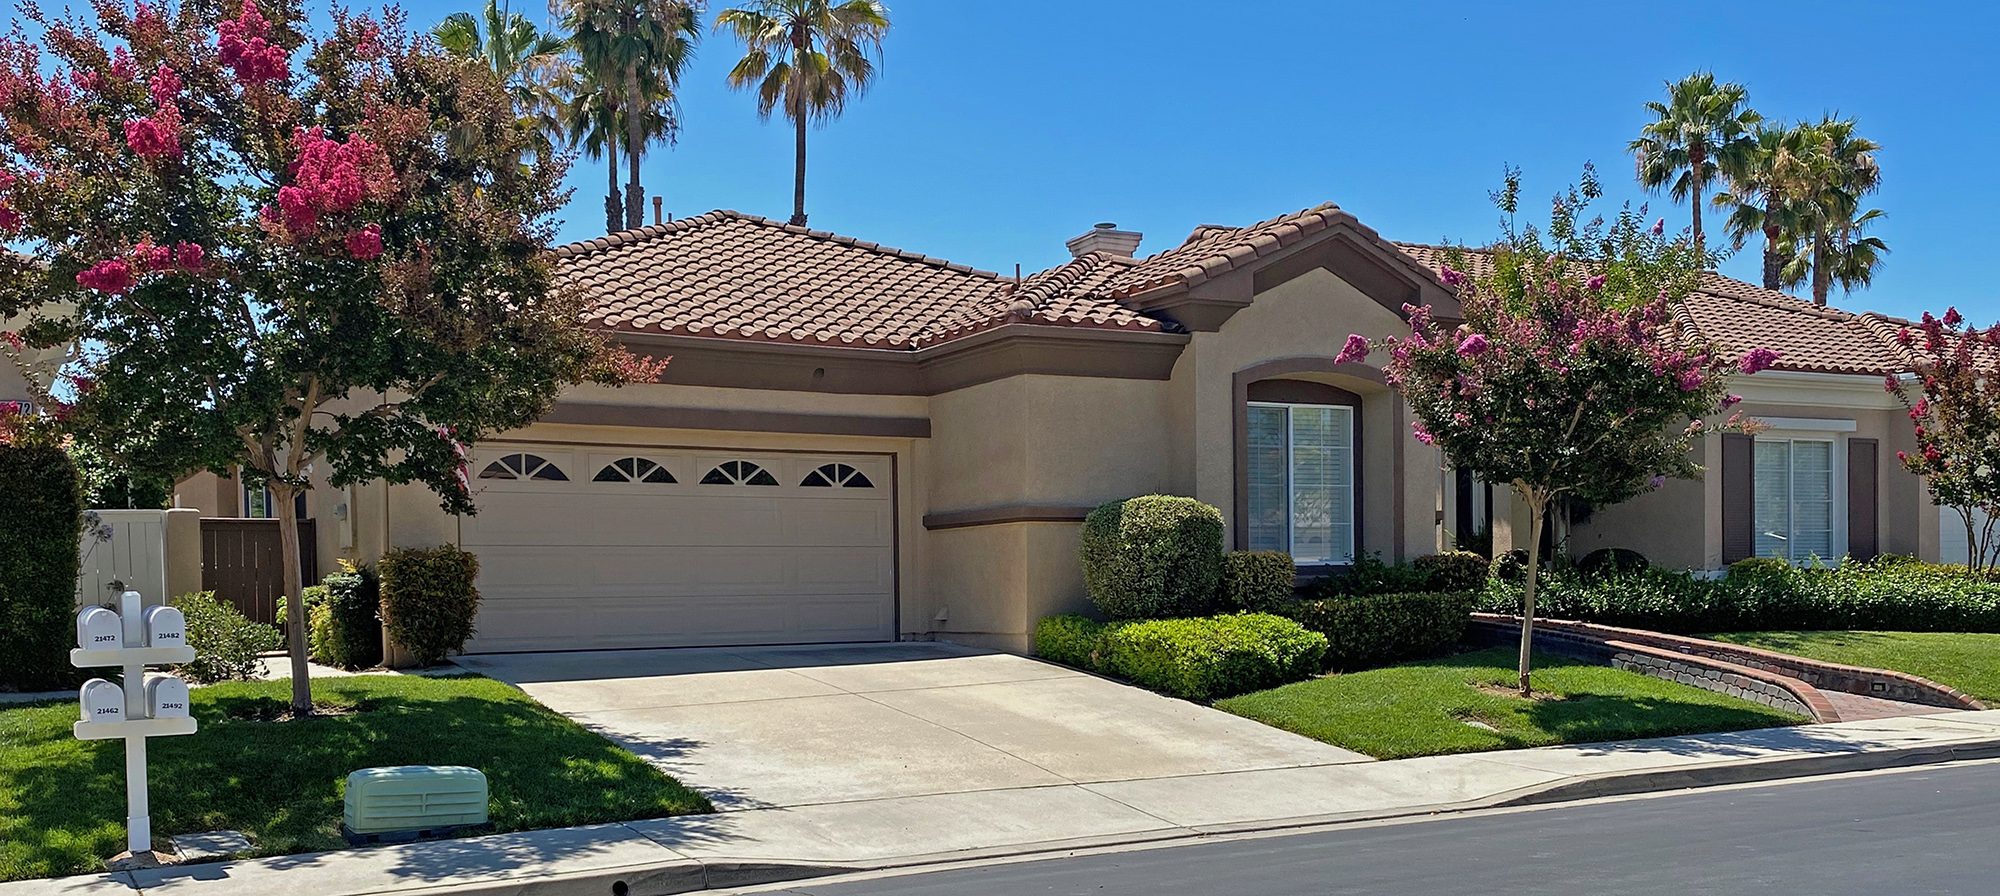 Palmia Homes for Sale in Mission Viejo Search Palmia Homes for Sale